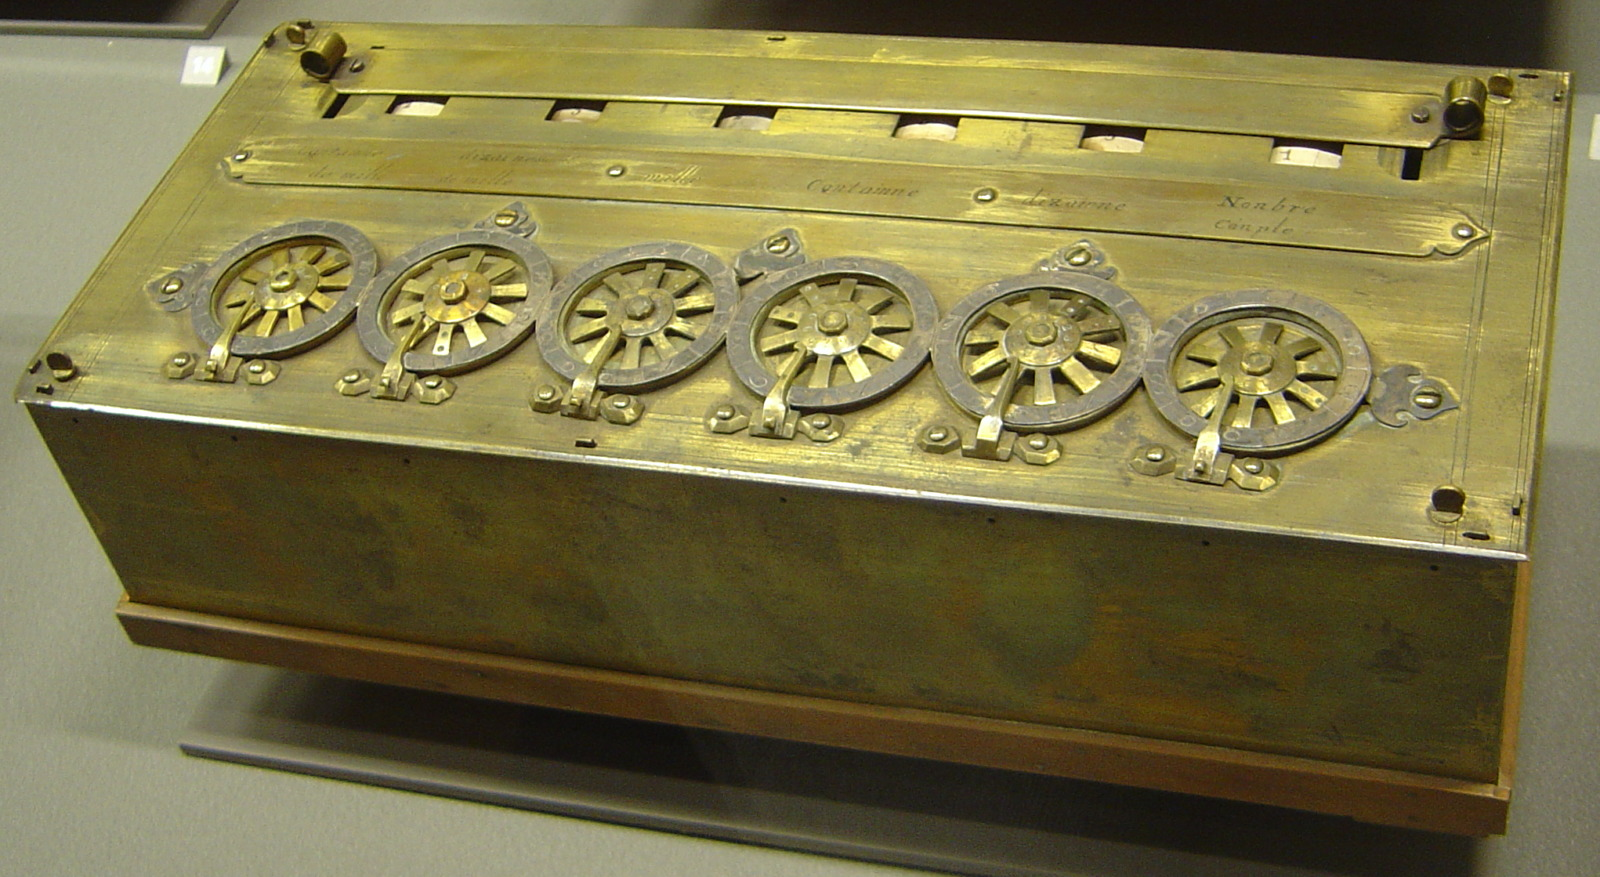 The Pascaline in the Arts et Métiers museum © Unknow Author - licence [CC BY-SA 3.0] from Wikimedia Commons